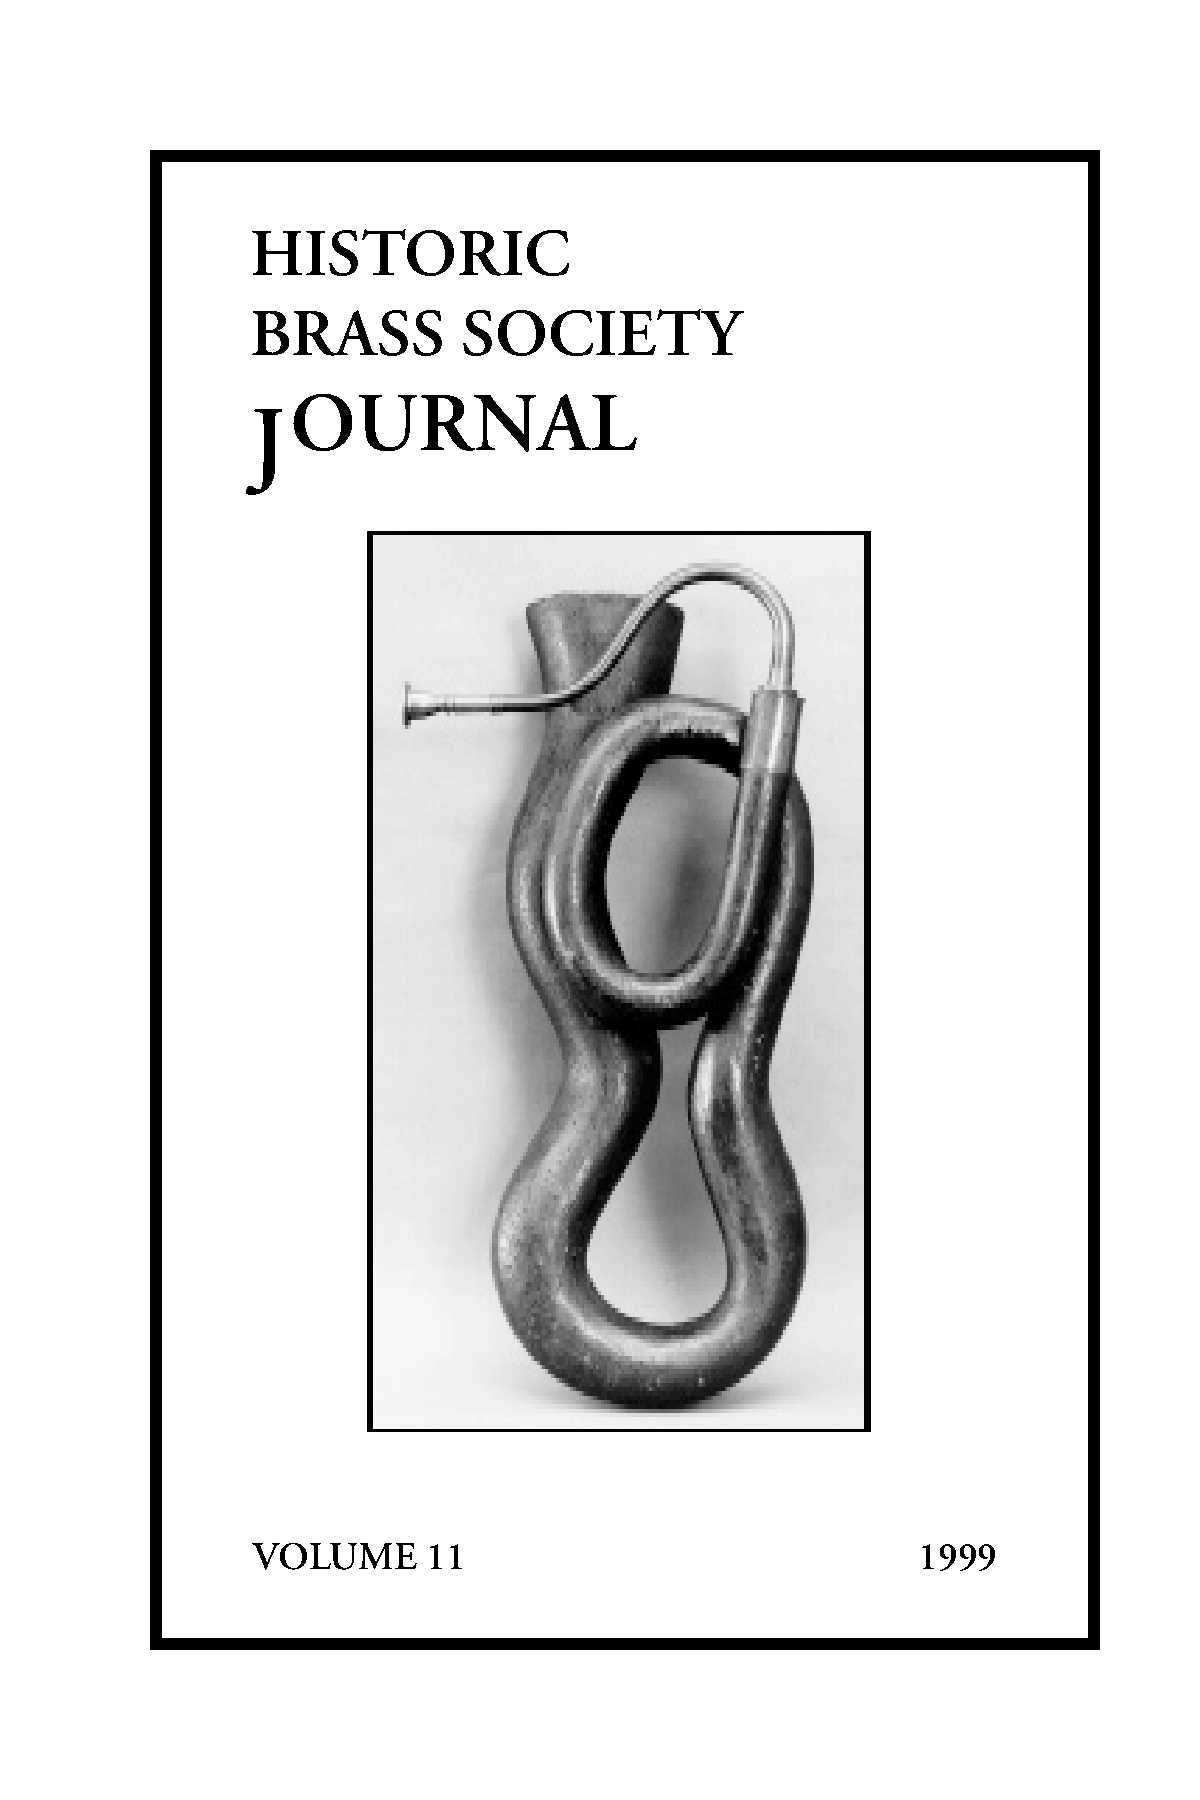 Historic Brass Journal - Volume 11 - 1999